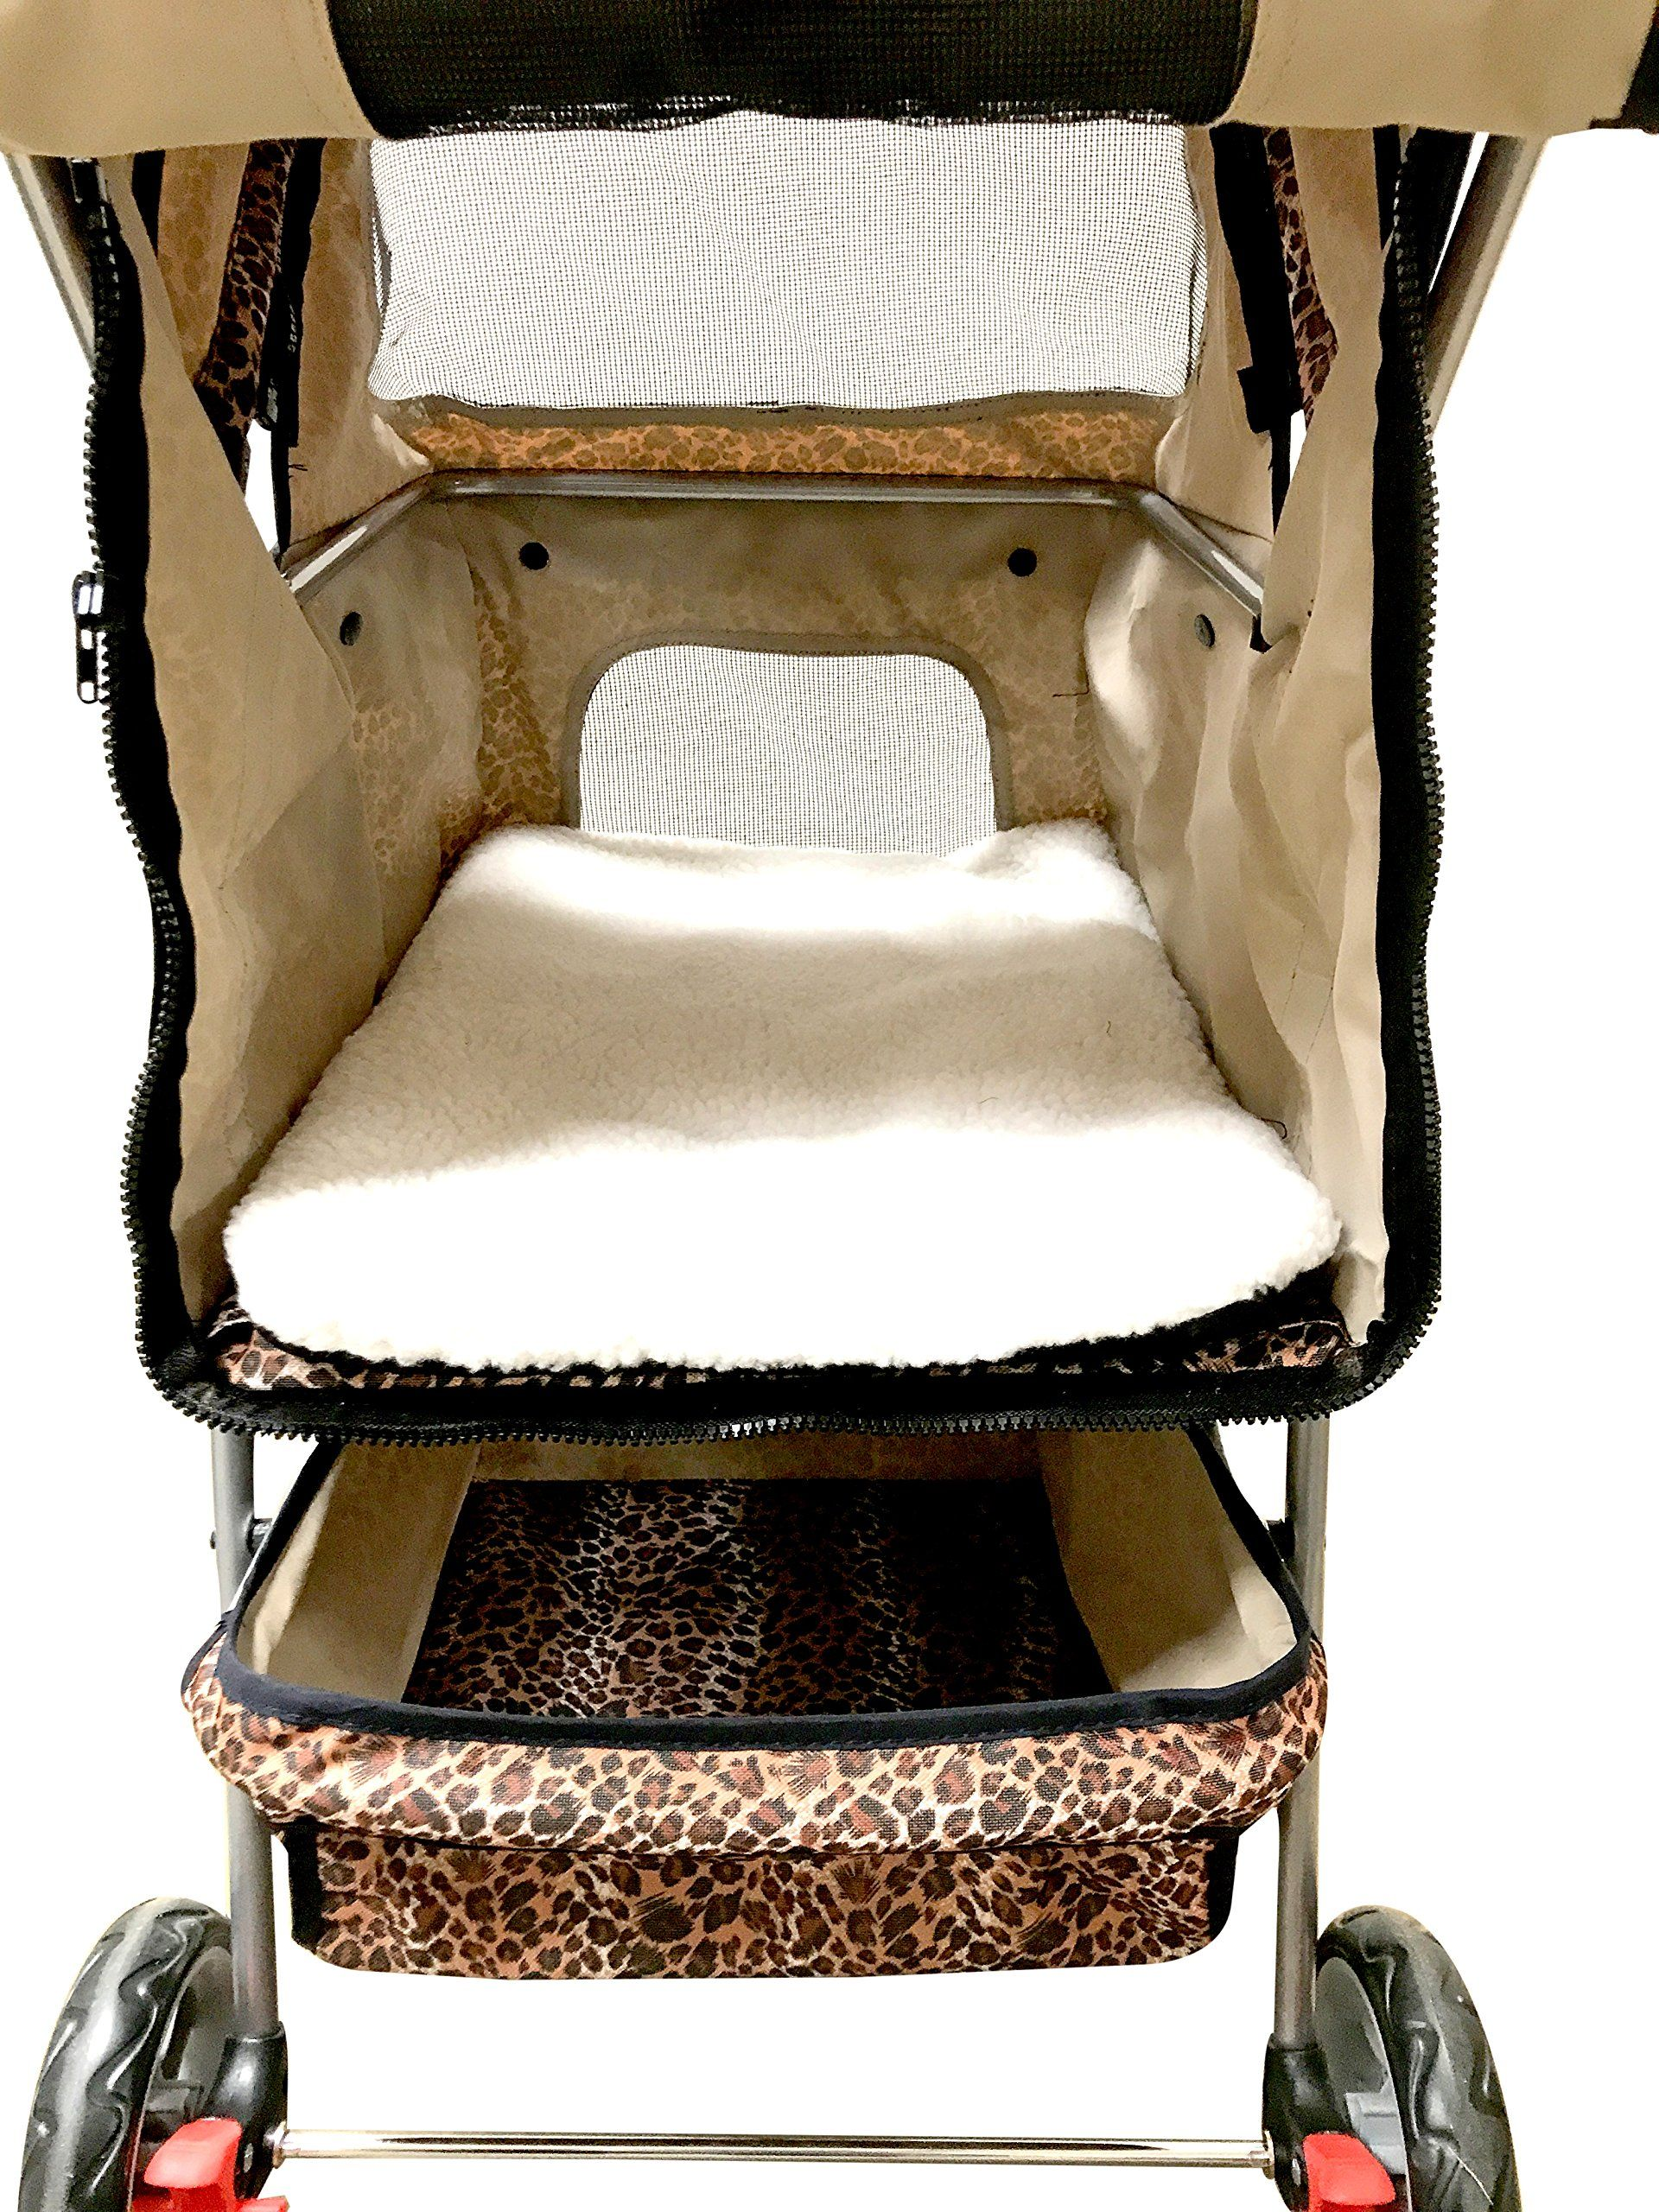 Premium Quality 3Wheel Pet Carrier Stroller For Cat and